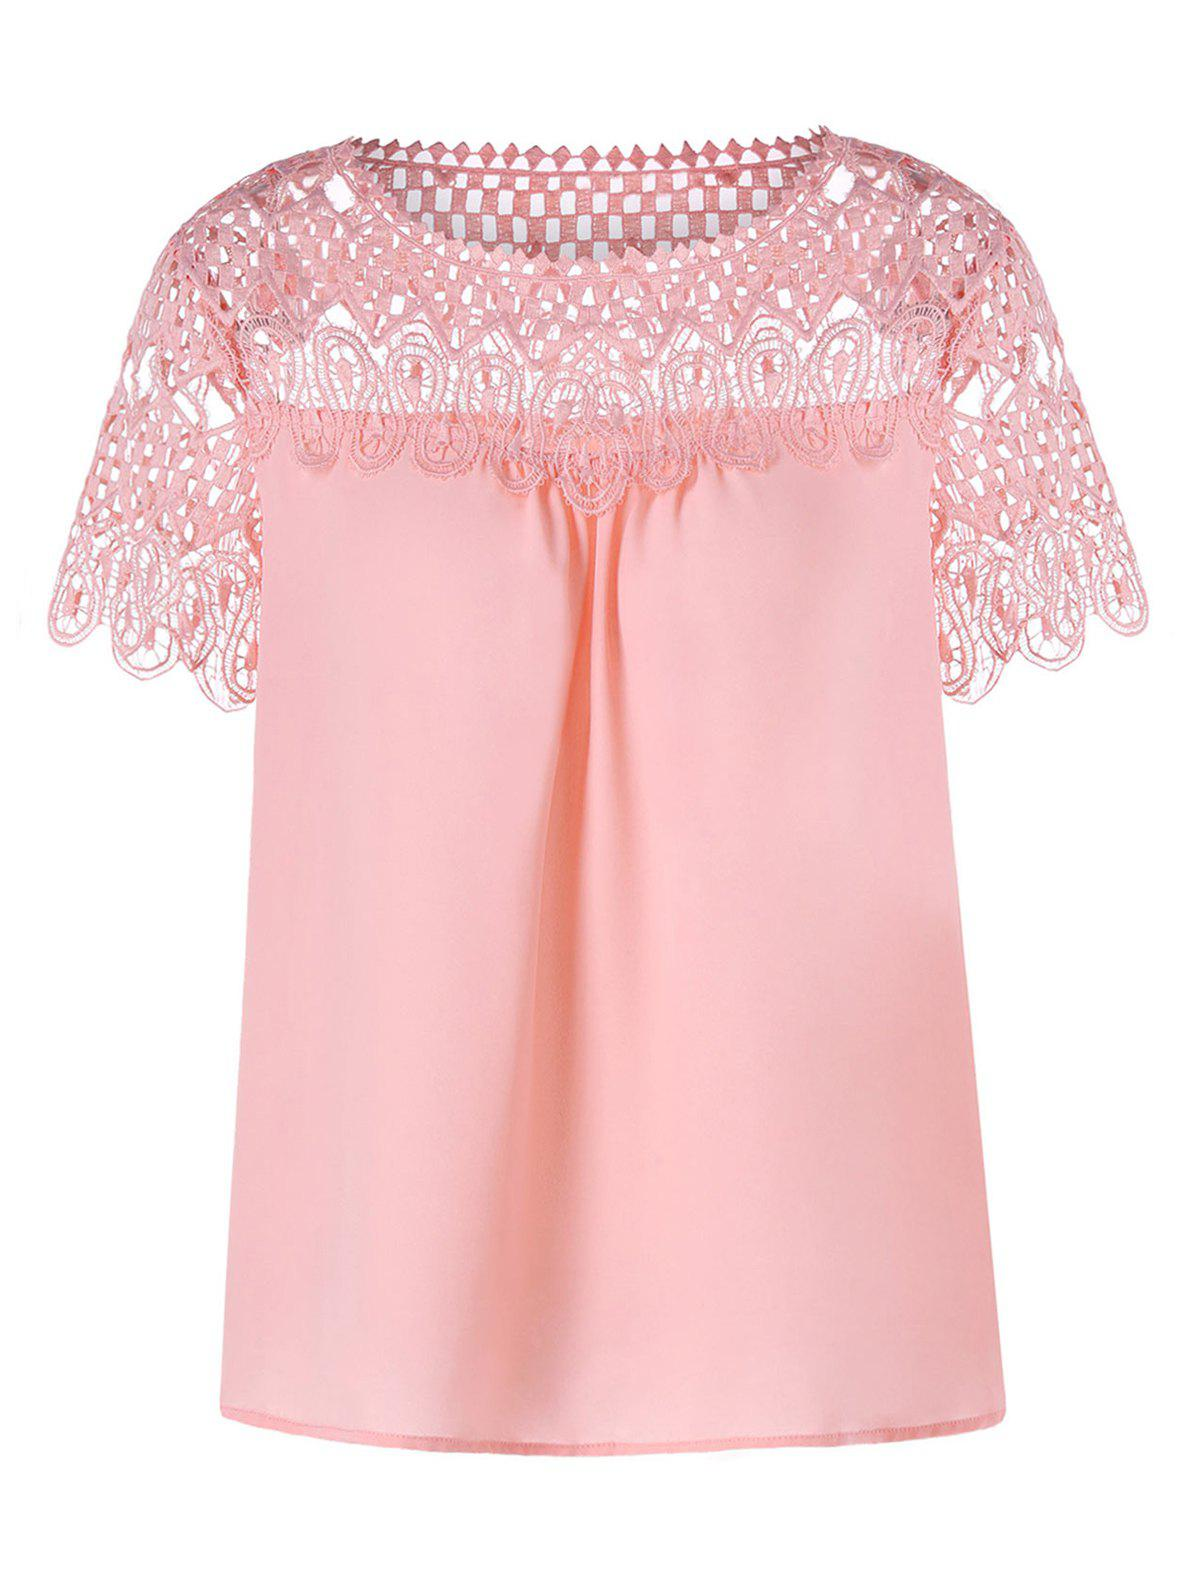 Cheap Lace Trim Hollow Out Chiffon Top